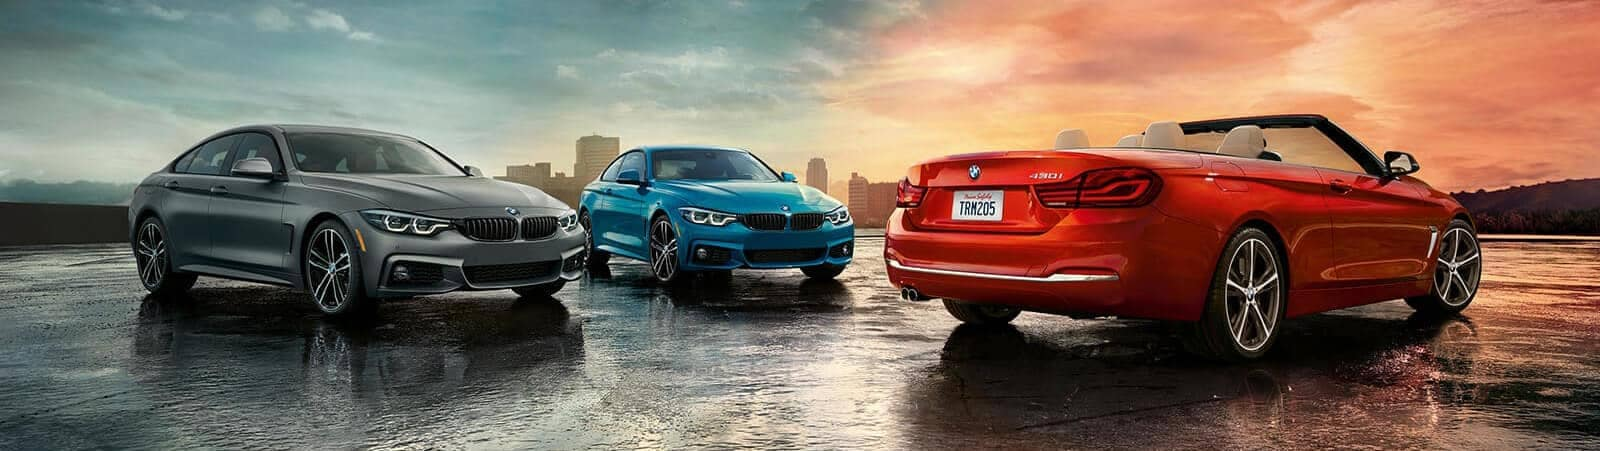 BMW 4Series convertibles in front of city skyline